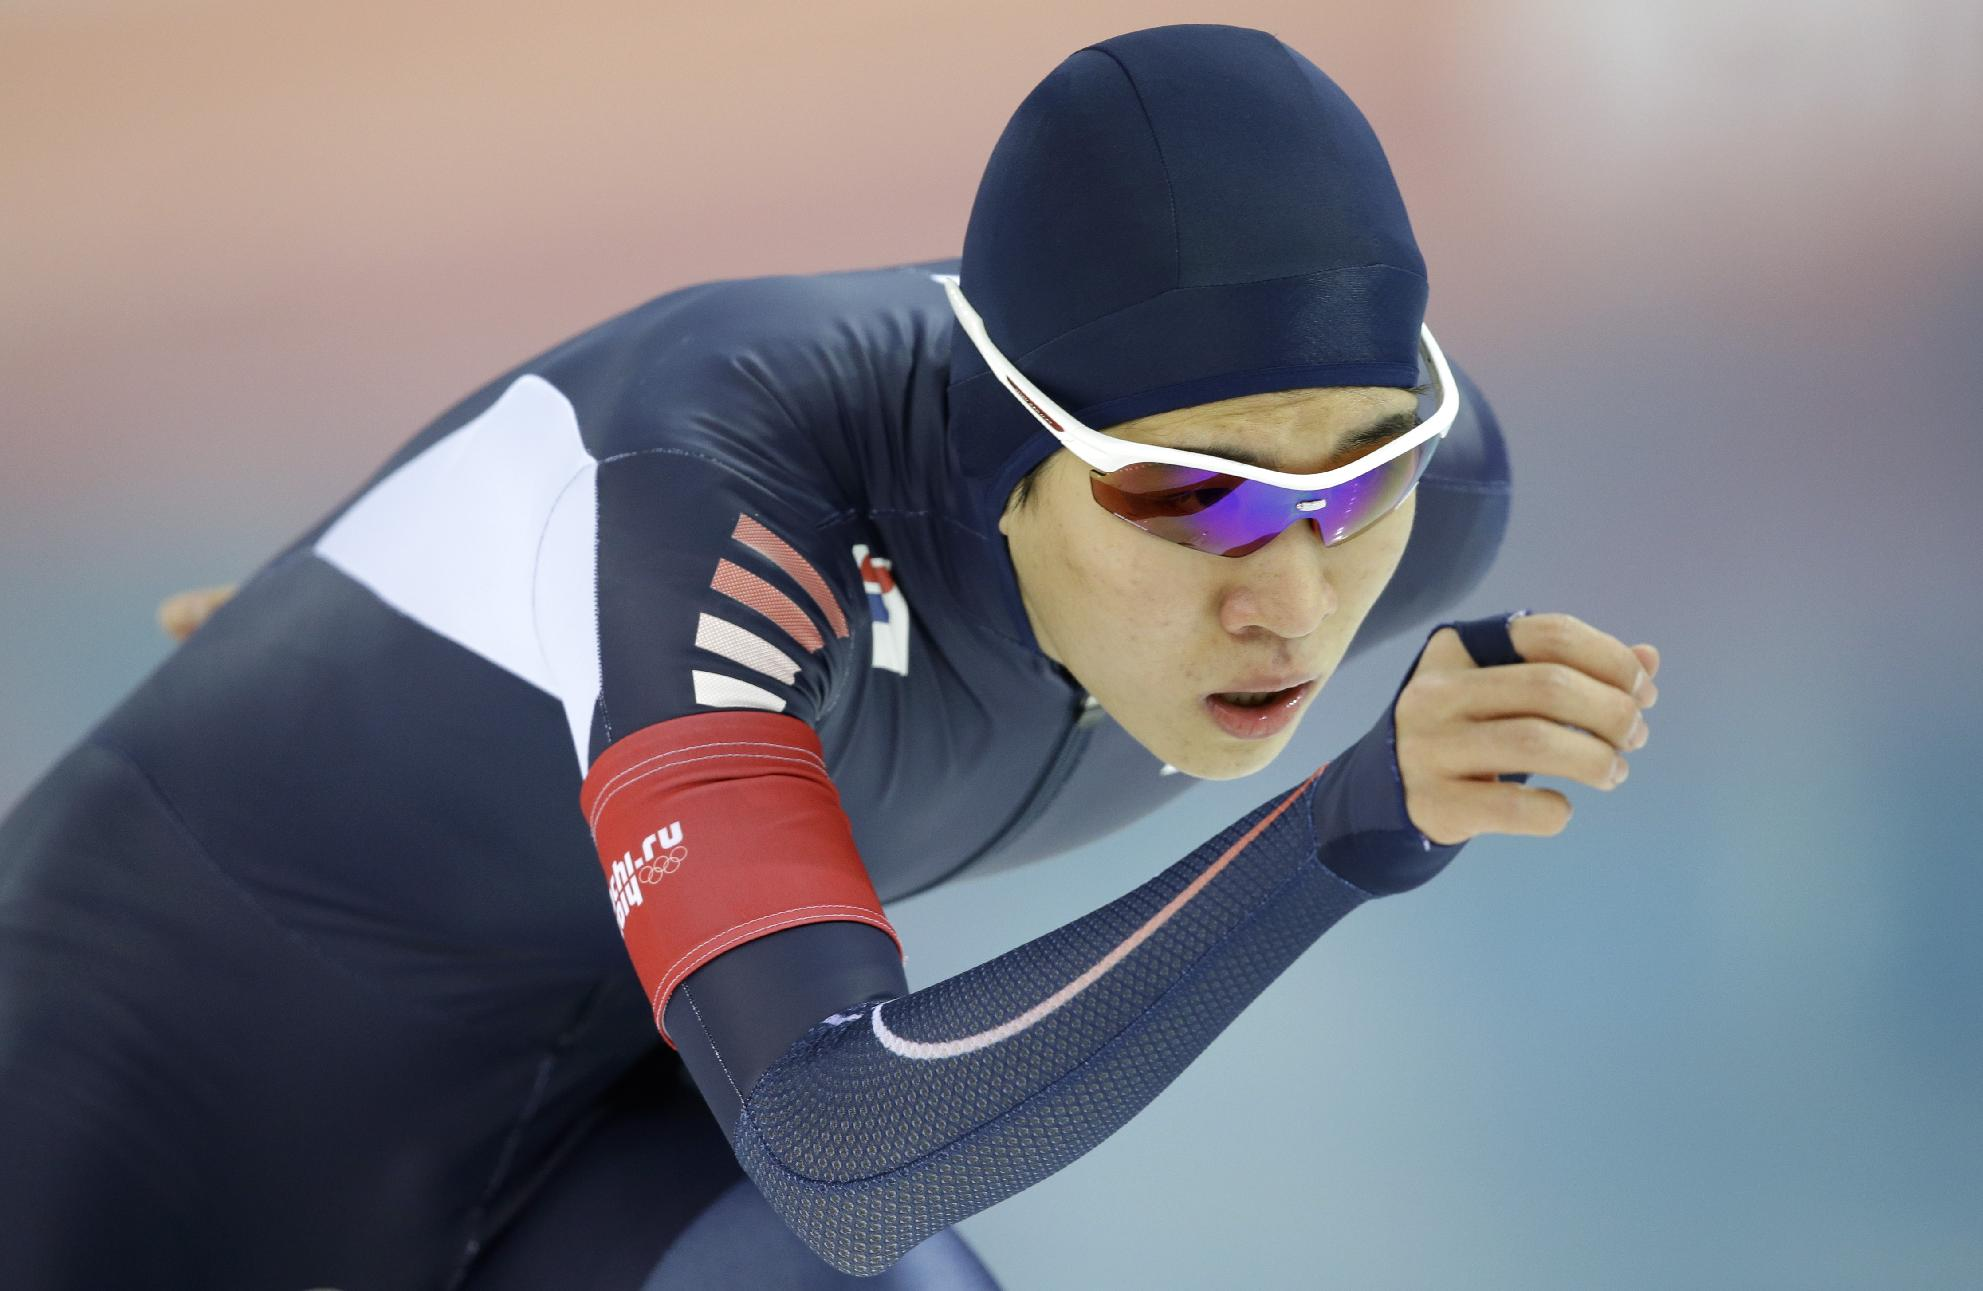 South Korean speedskater Kim Cheol-min competes in the men's 5,000-meter speedskating race at the Adler Arena Skating Center during the 2014 Winter Olympics, Saturday, Feb. 8, 2014, in Sochi, Russia